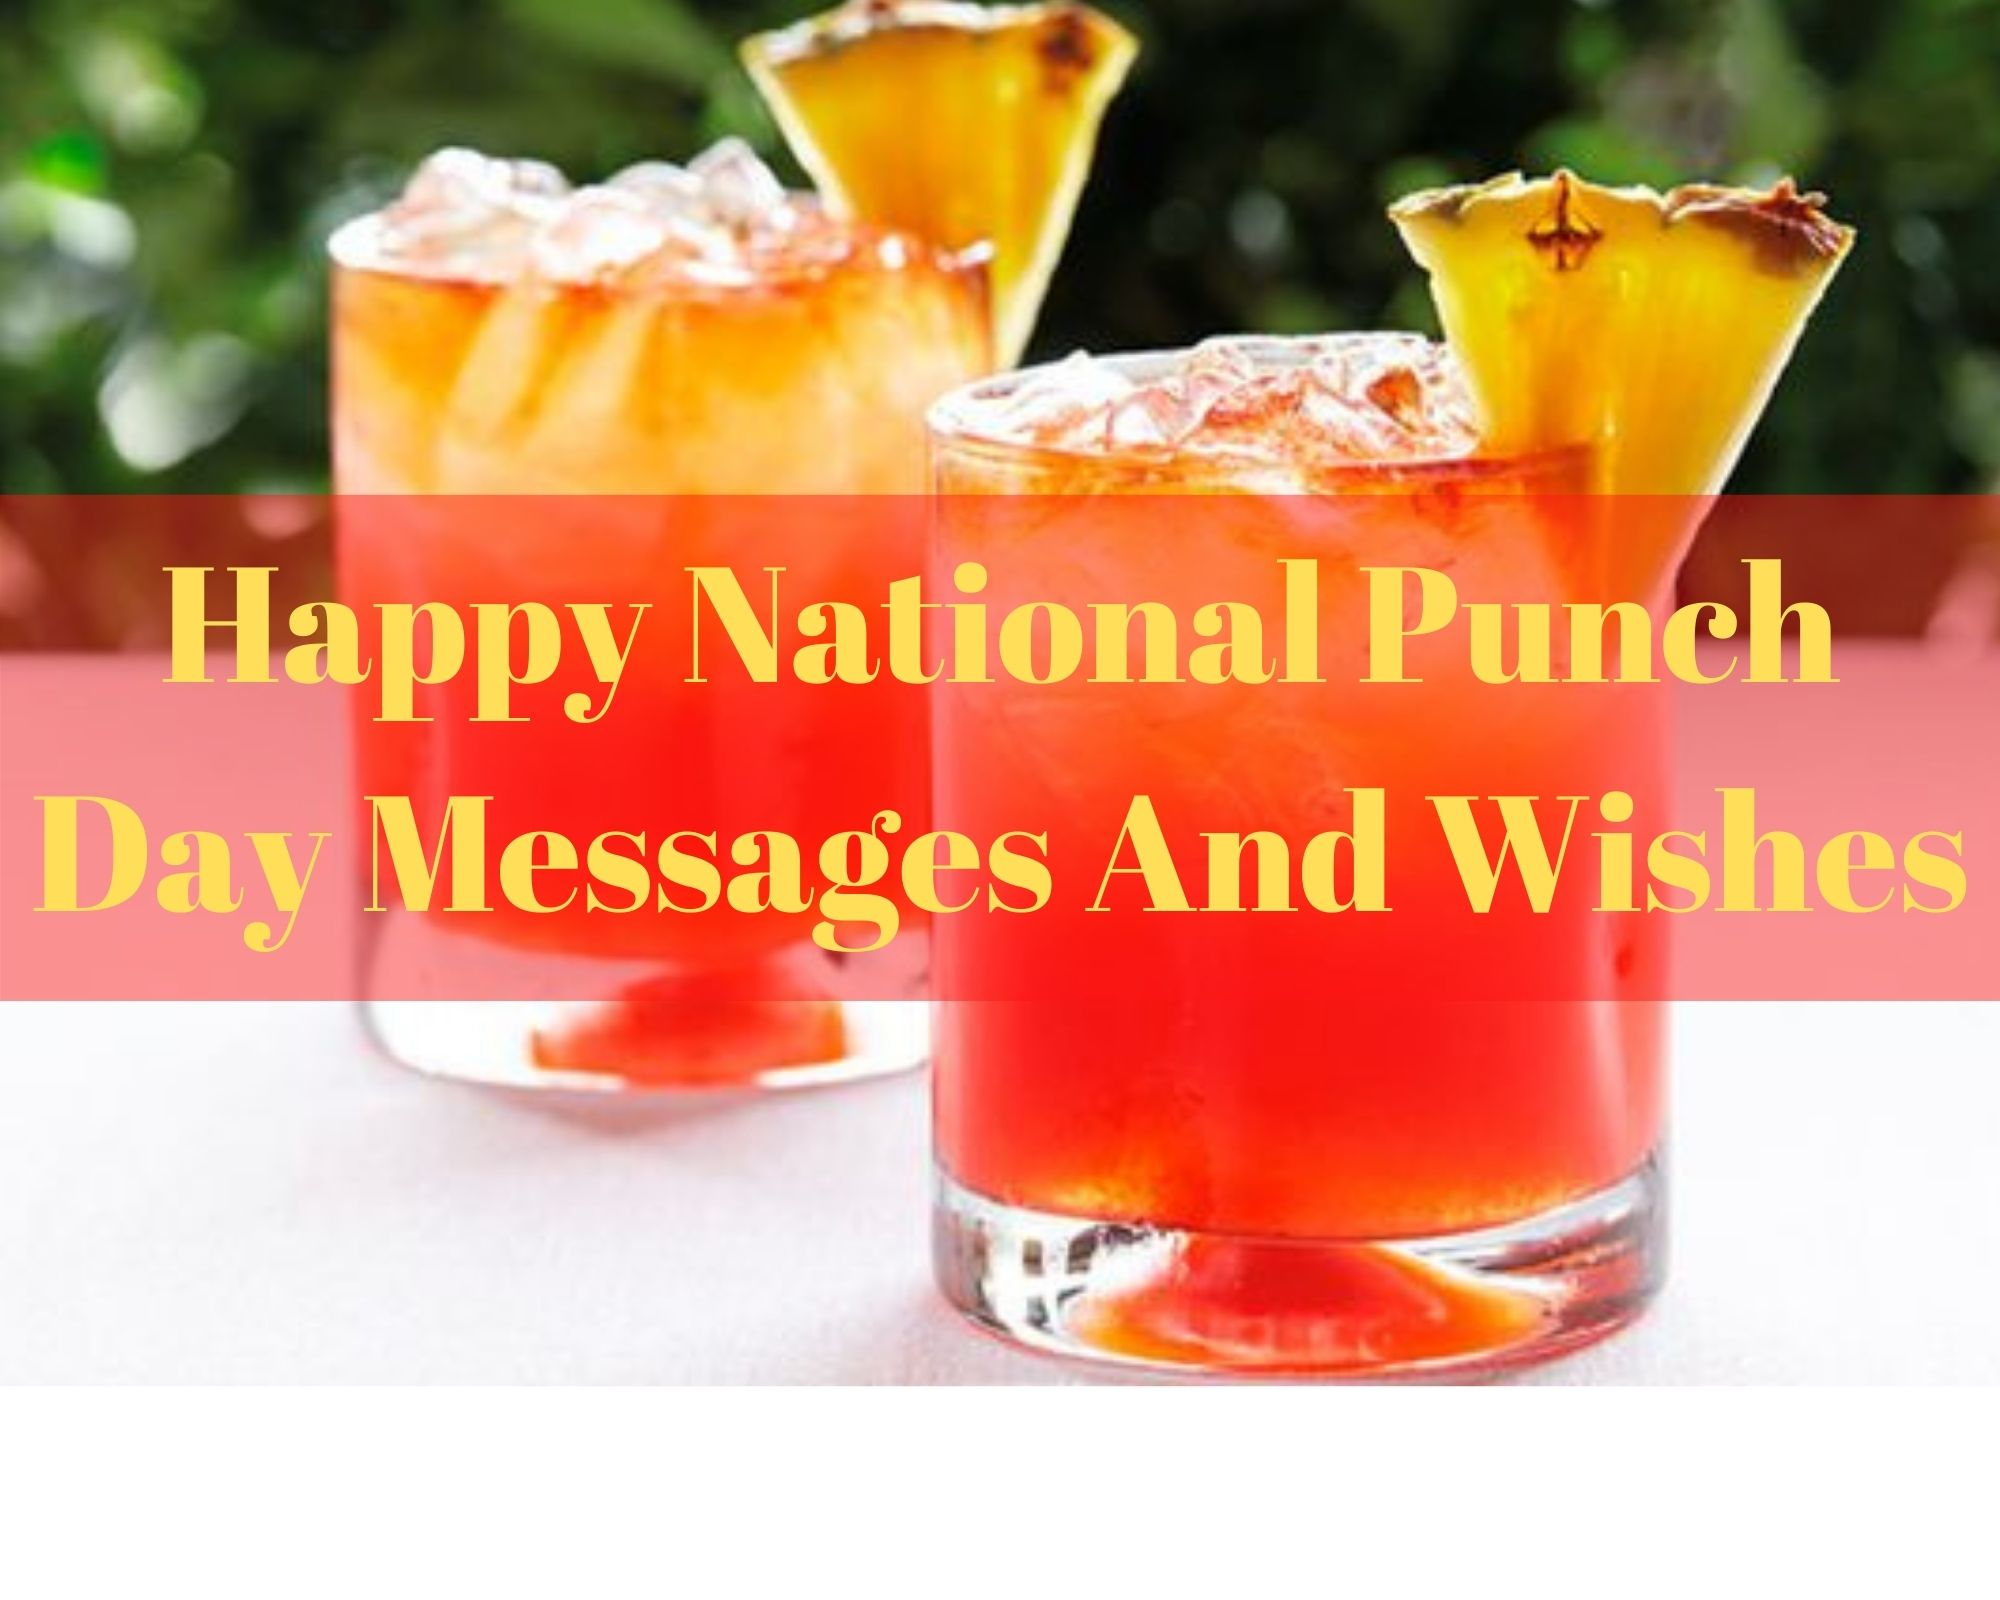 Celebrating National Punch Day